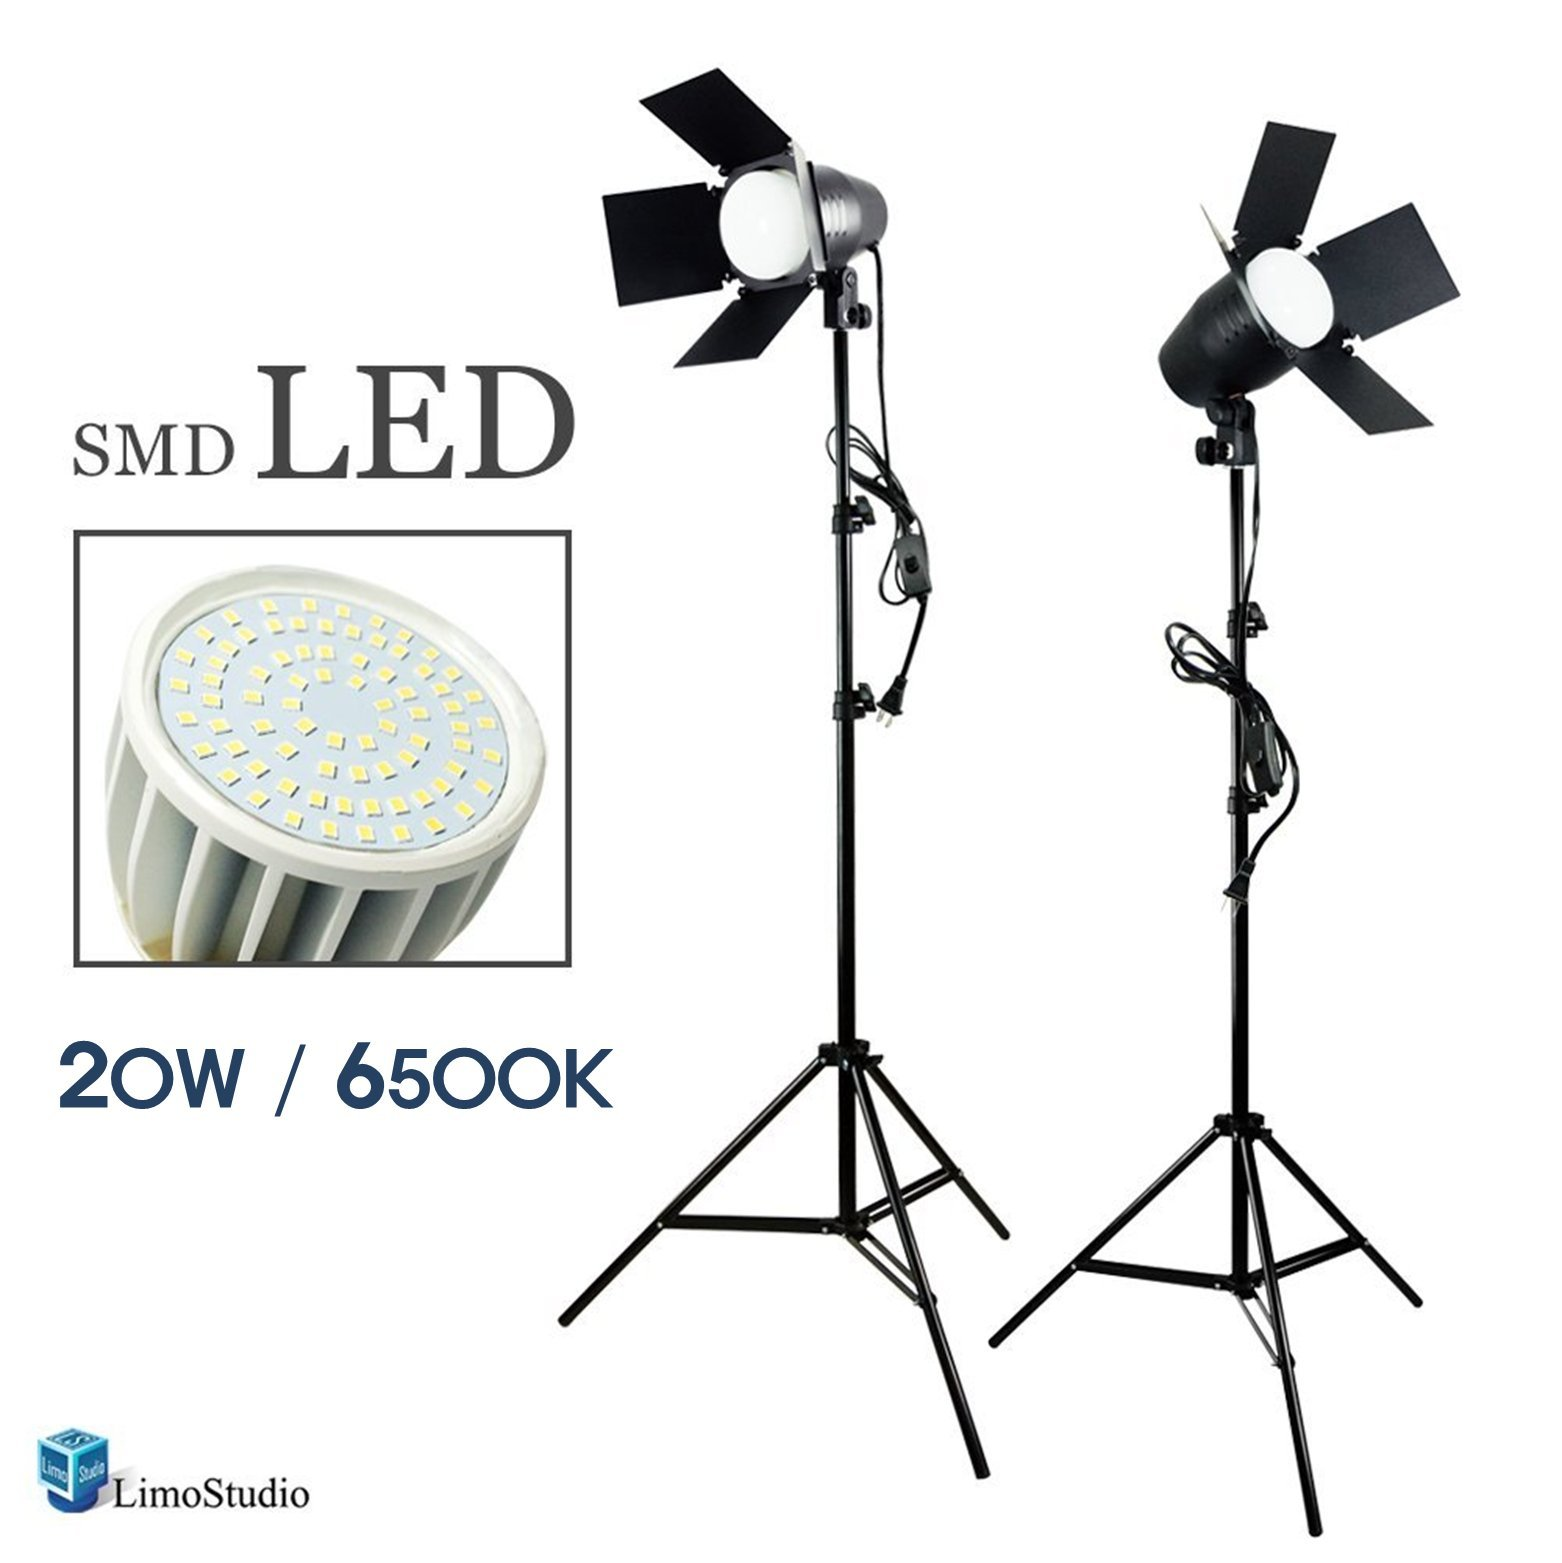 LimoStudio LED Day Light Bulb 2 pcs x Continuous Barndoor Light Stand Kit for Photography Photo Studio by LimoStudio